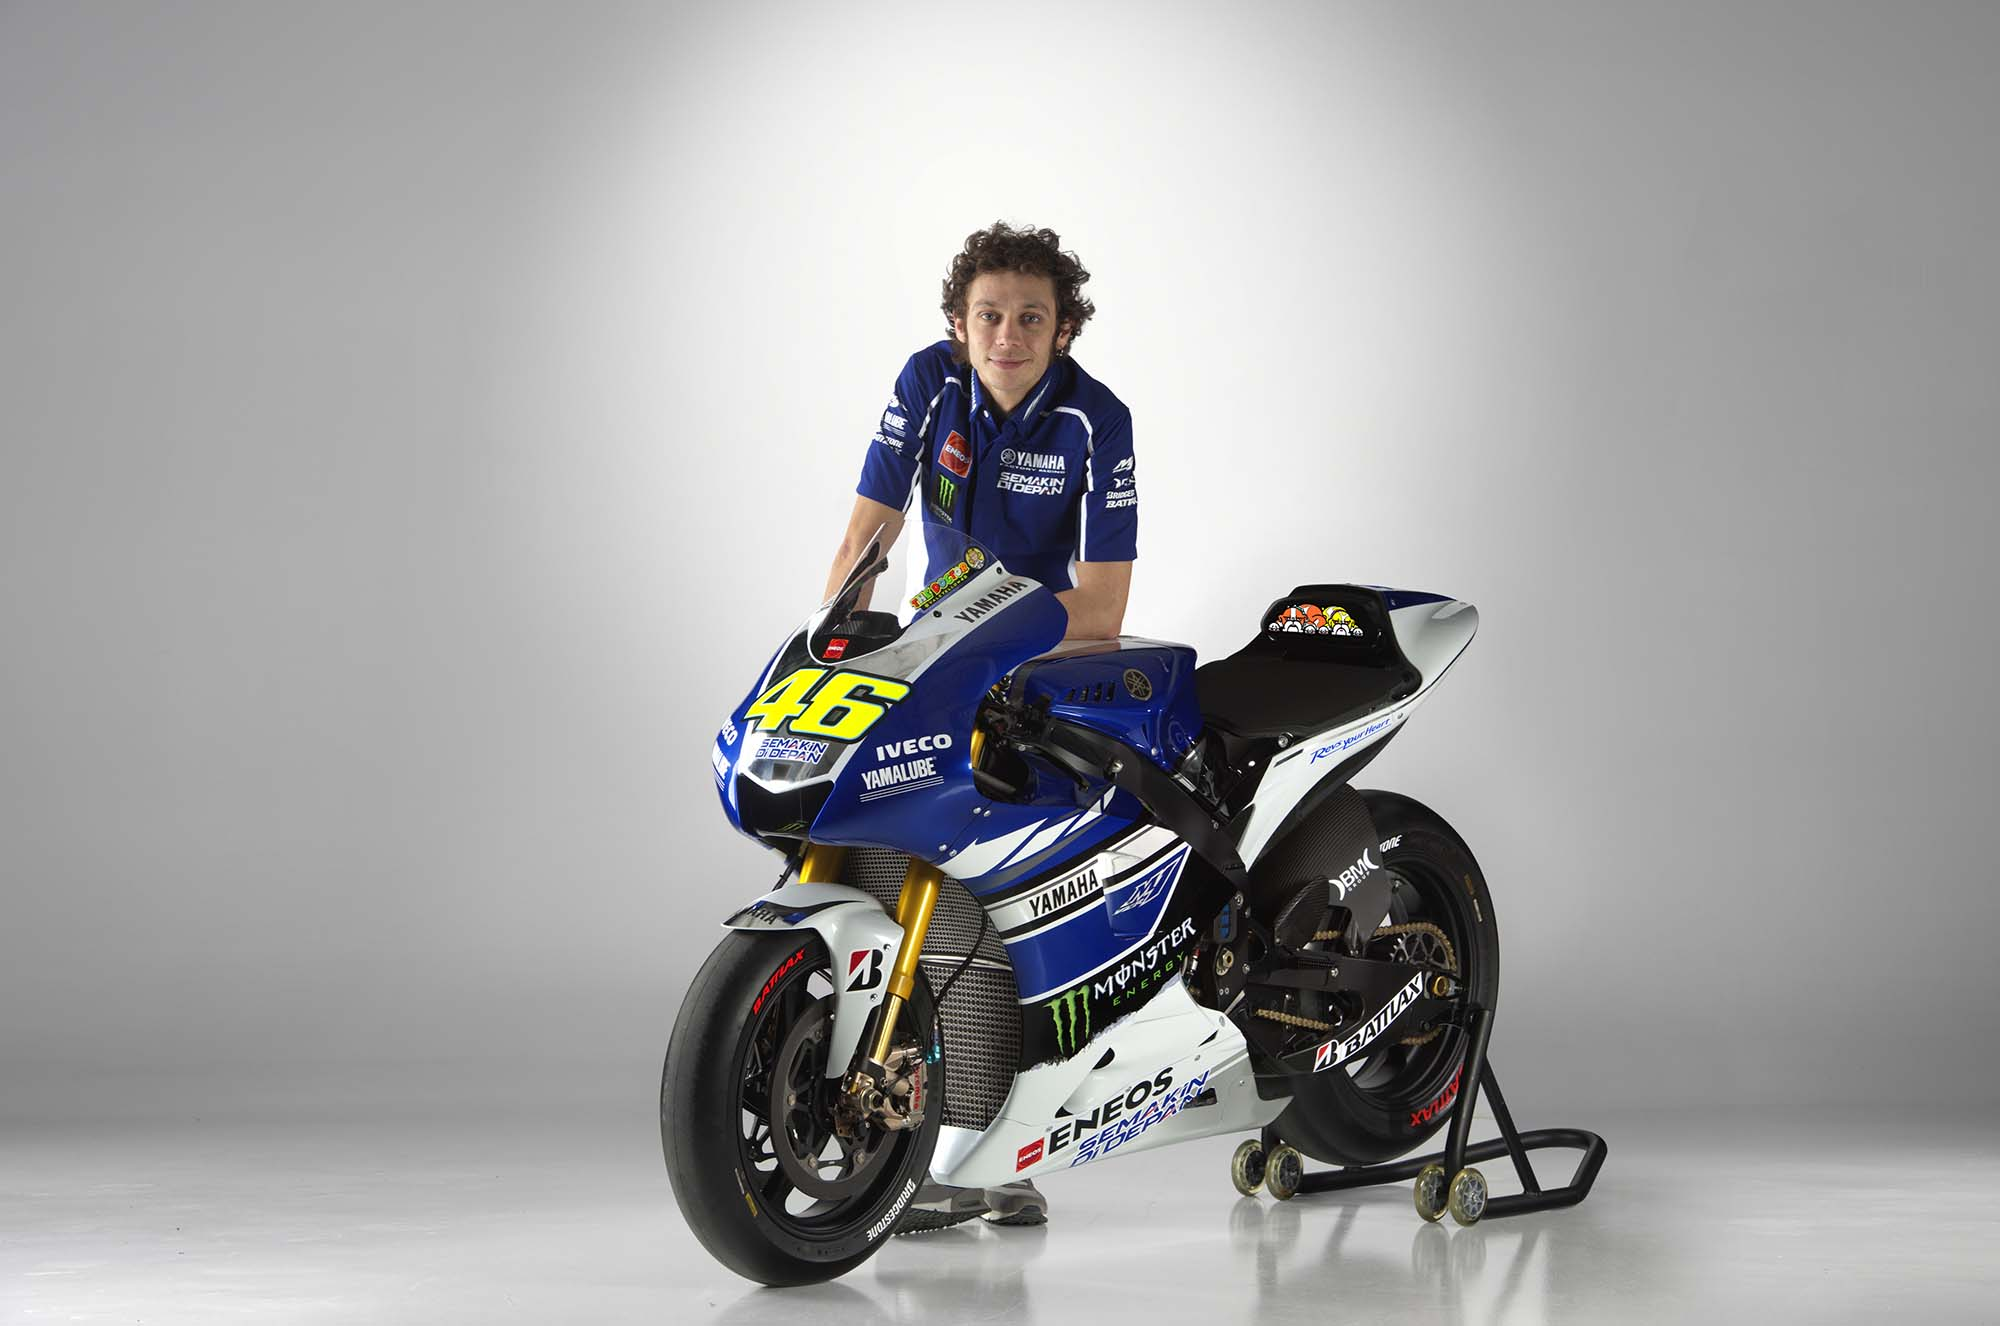 The-Doctor-Valentino-Rossi-Wallpaper-MotoGP-13